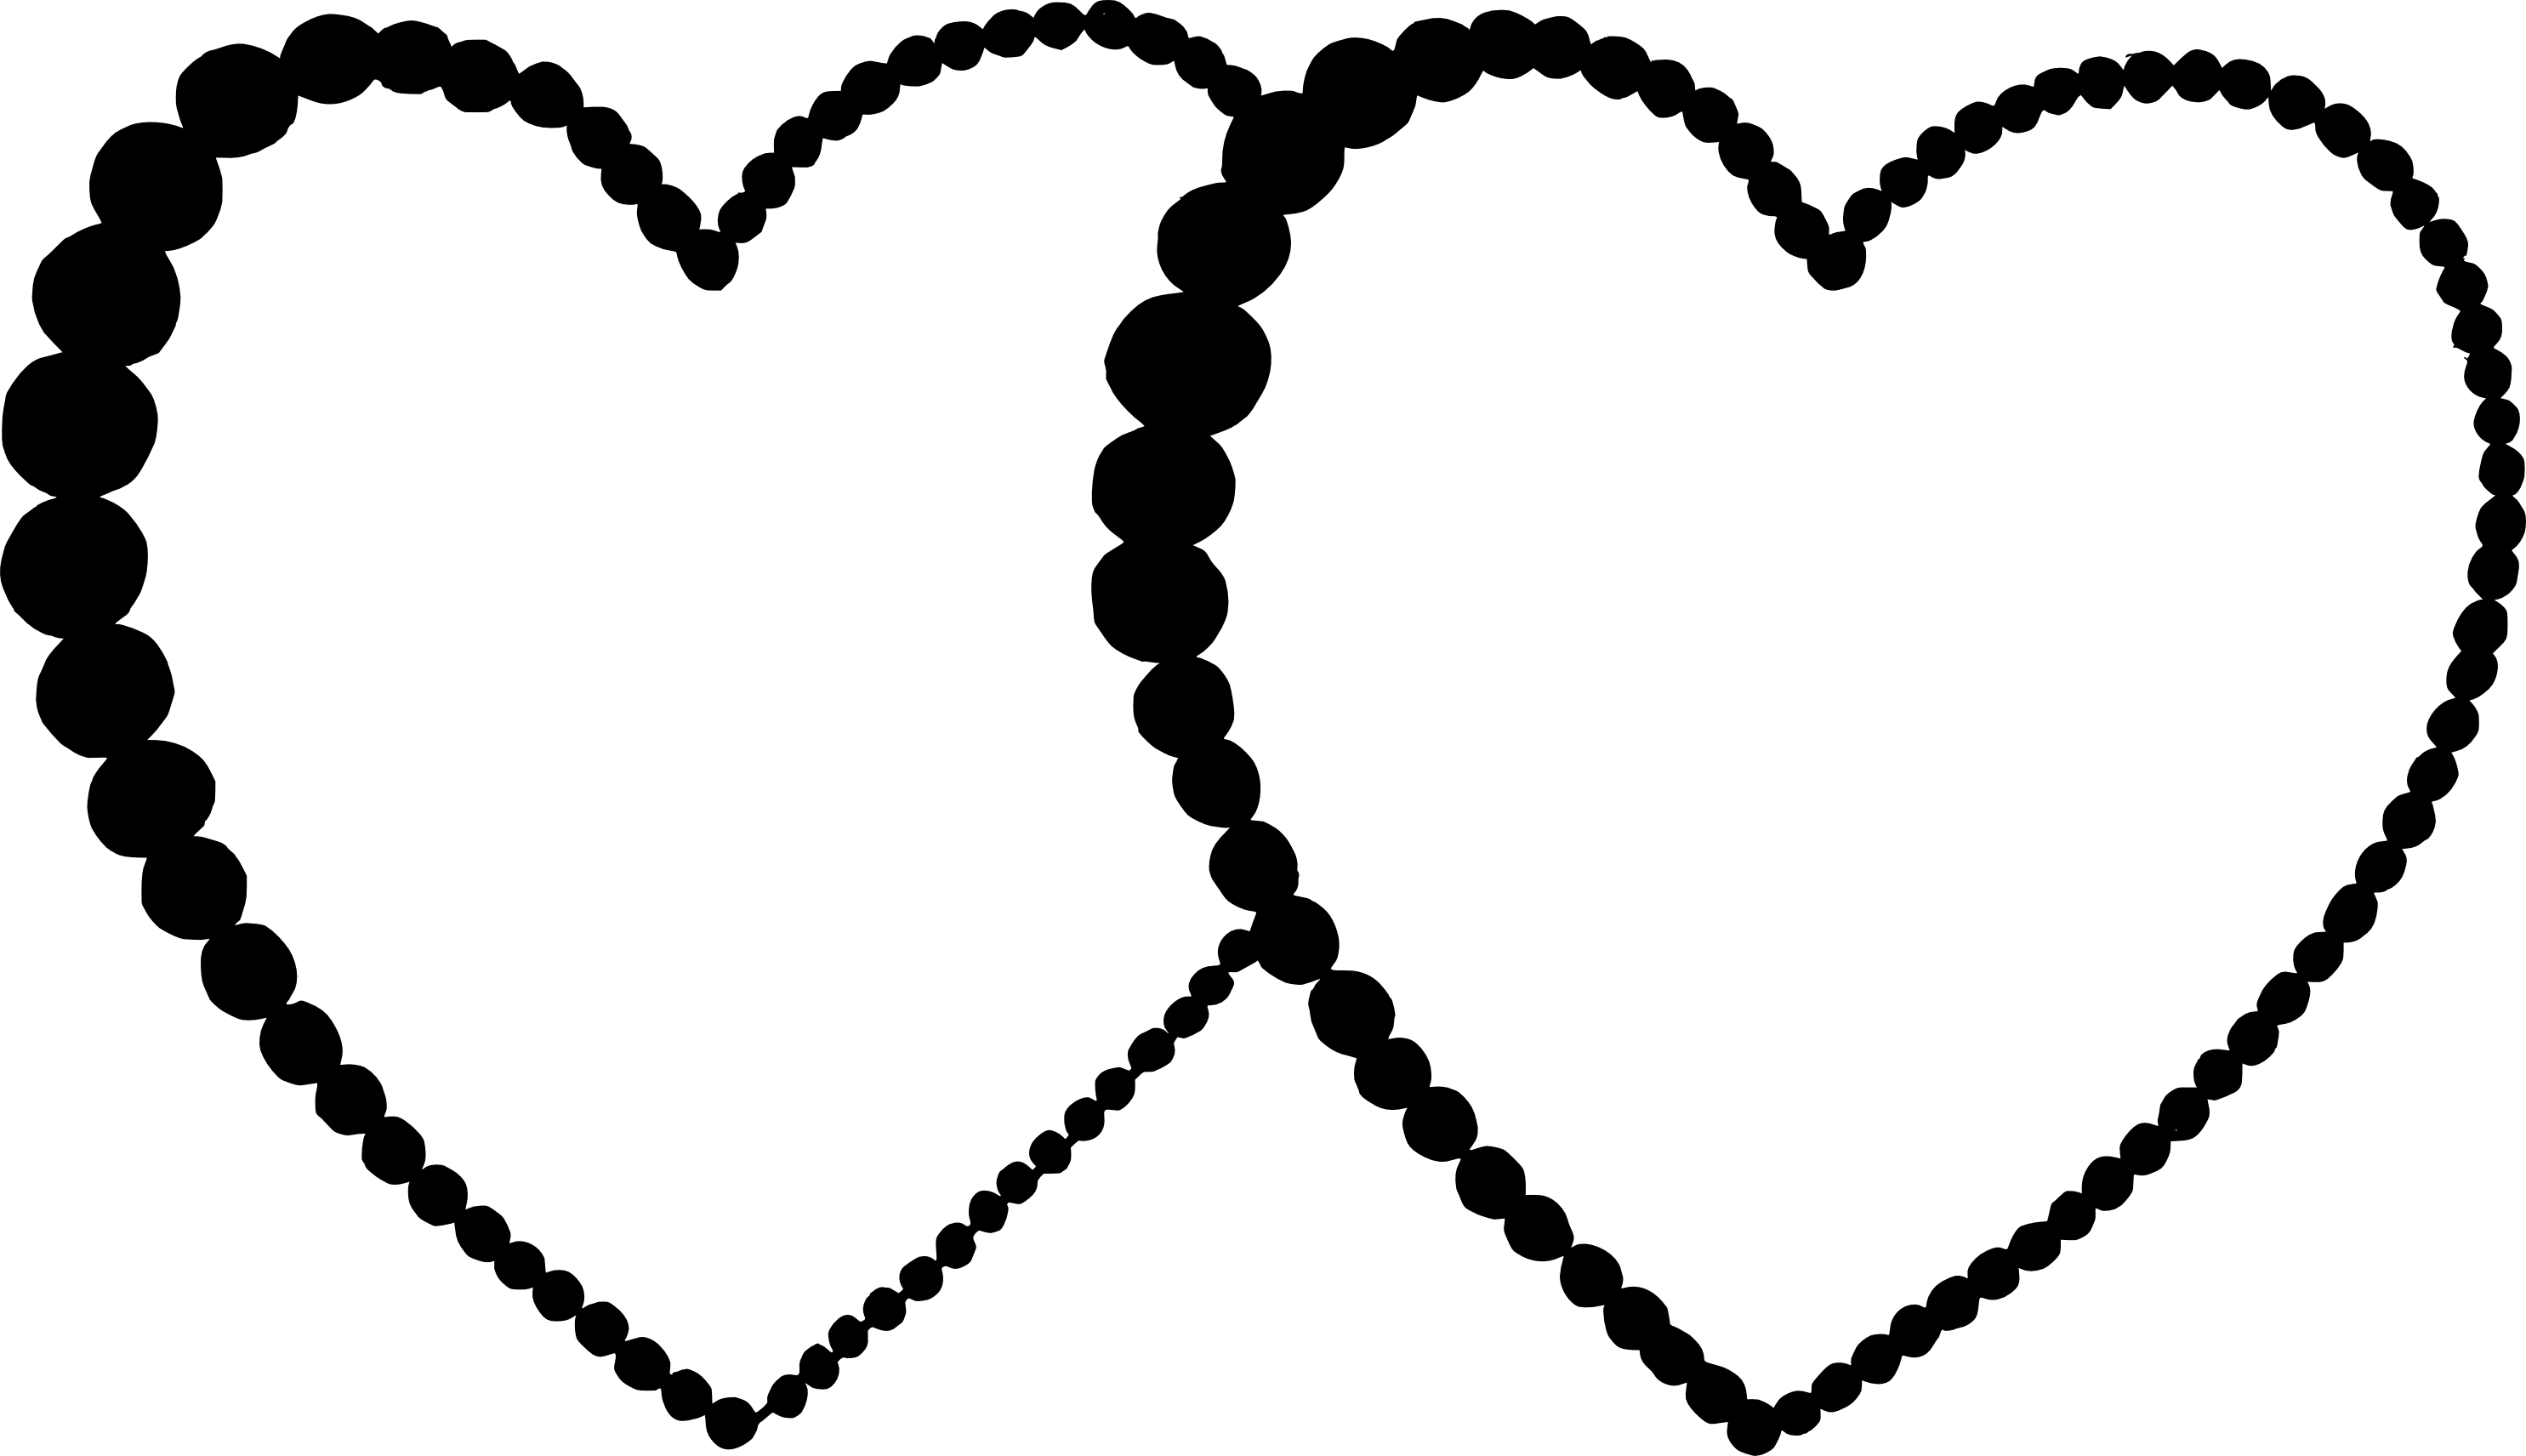 8 Two Hearts Vector (PNG Transparent, SVG) | OnlyGFX.com